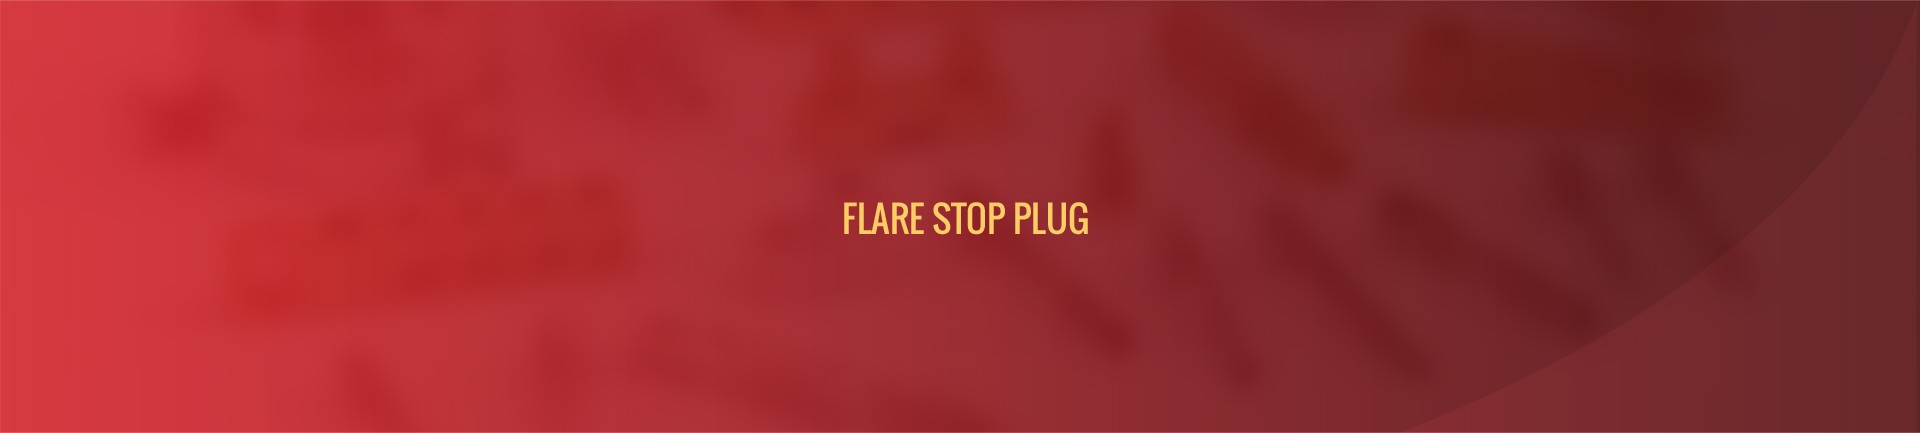 flare_stop_plug-banner